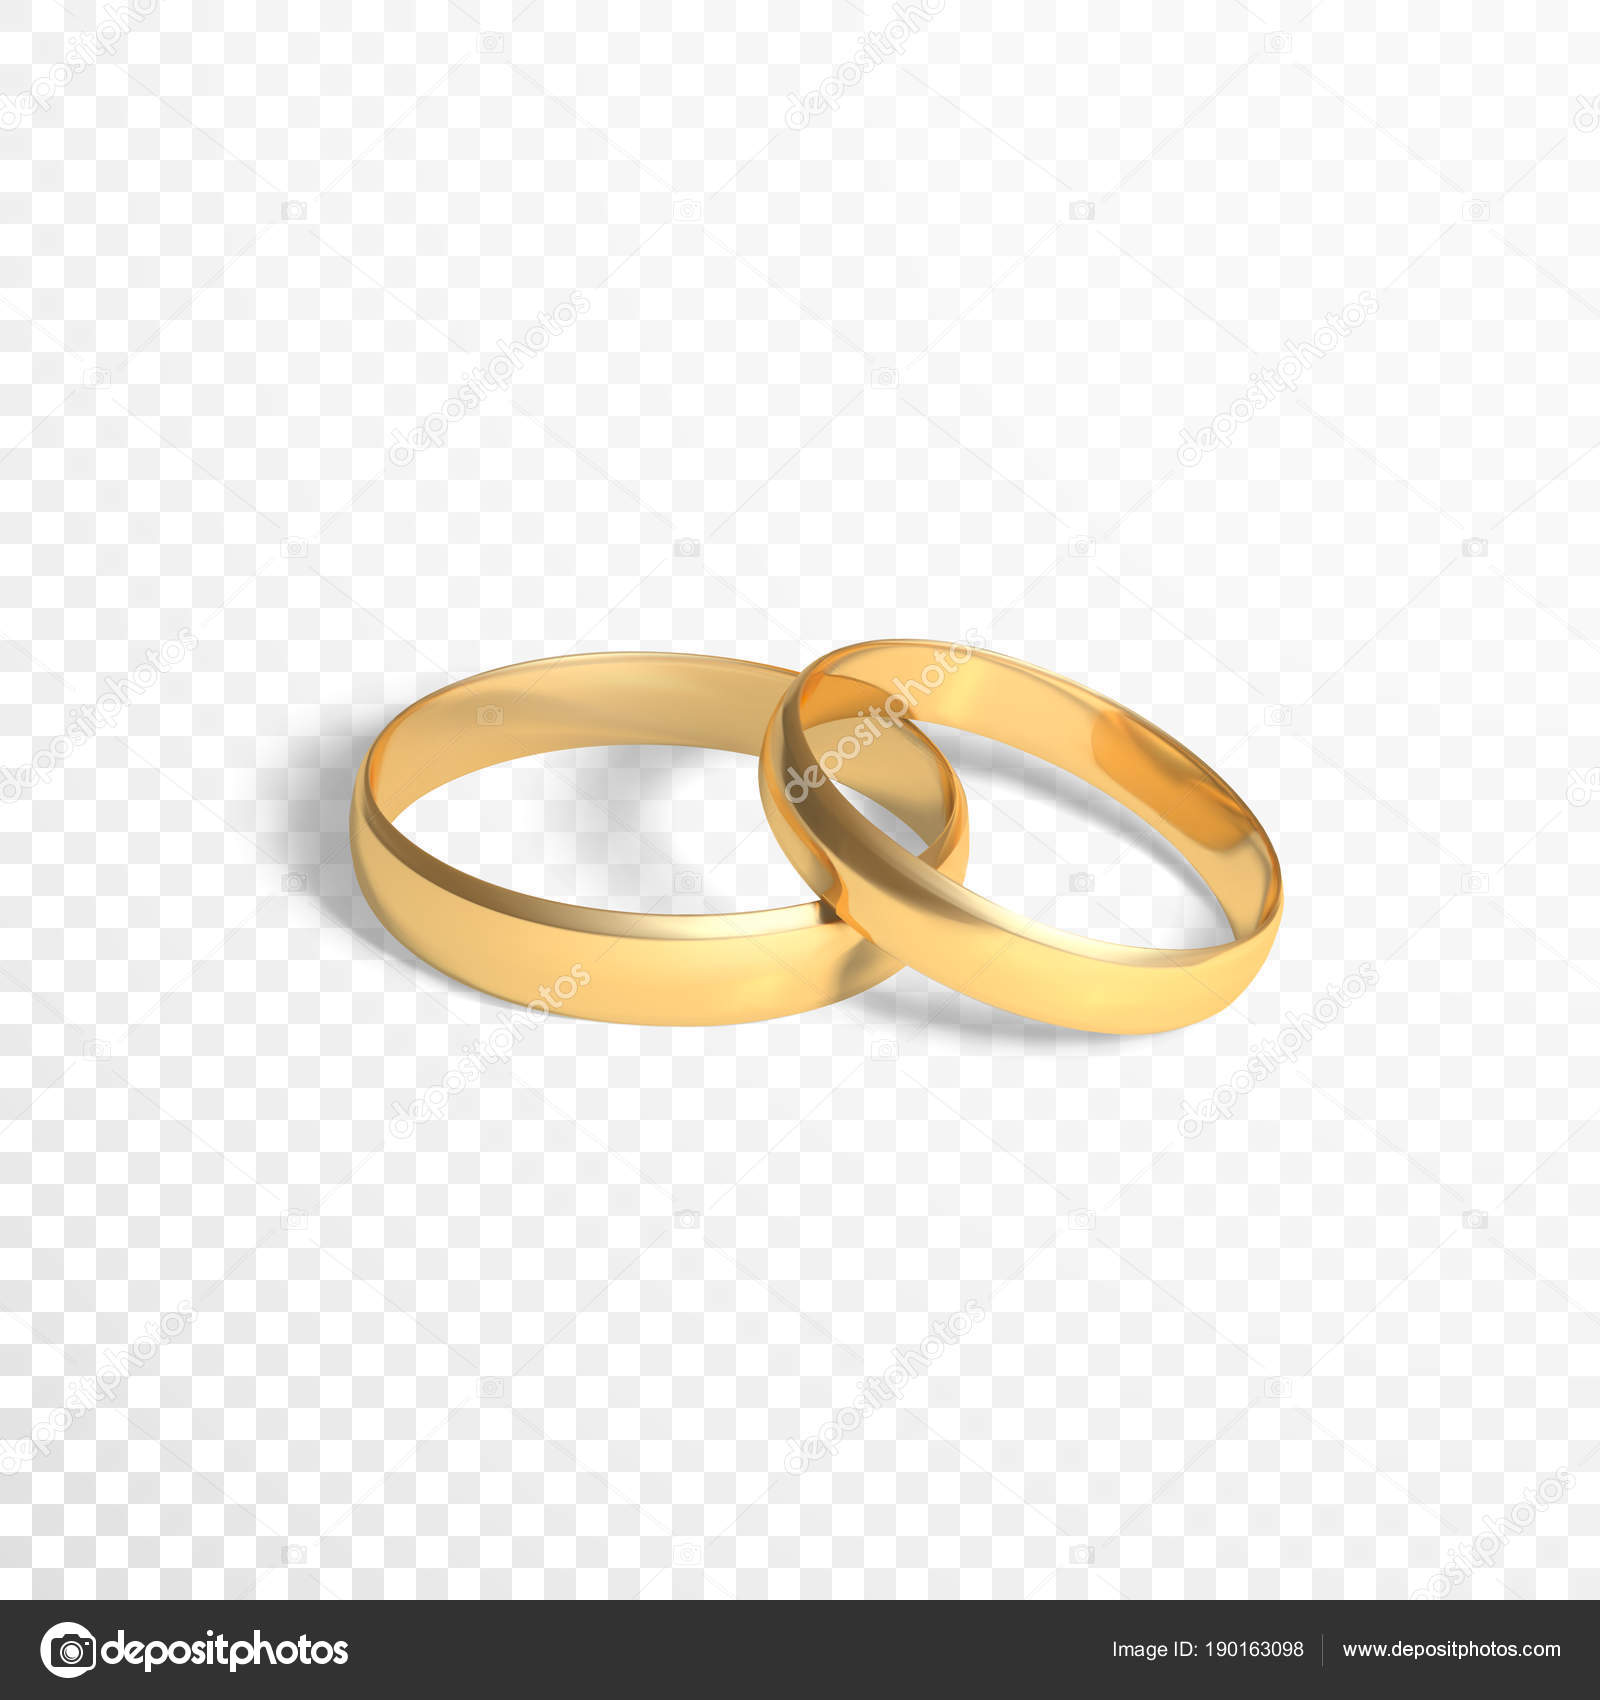 rings illustration shape stock two golden heart image photo shutterstock